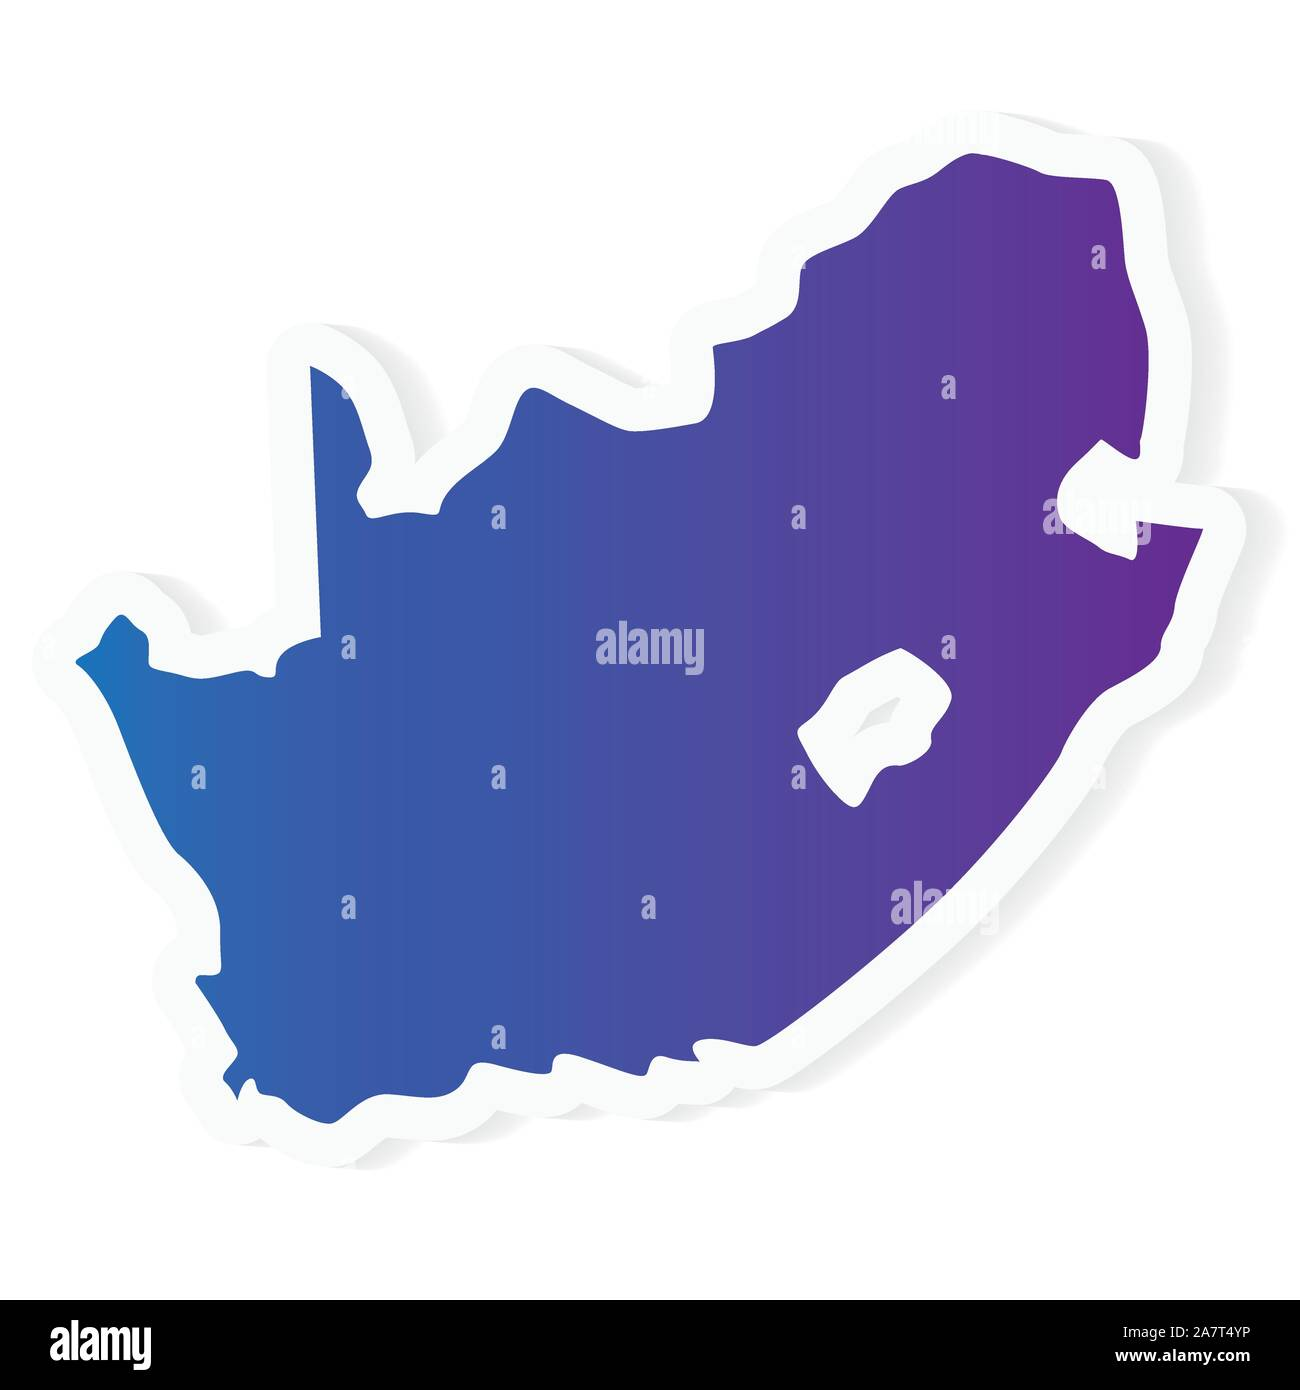 Africa Map Vector Art.Gradient South Africa Map Vector Illustration Stock Vector